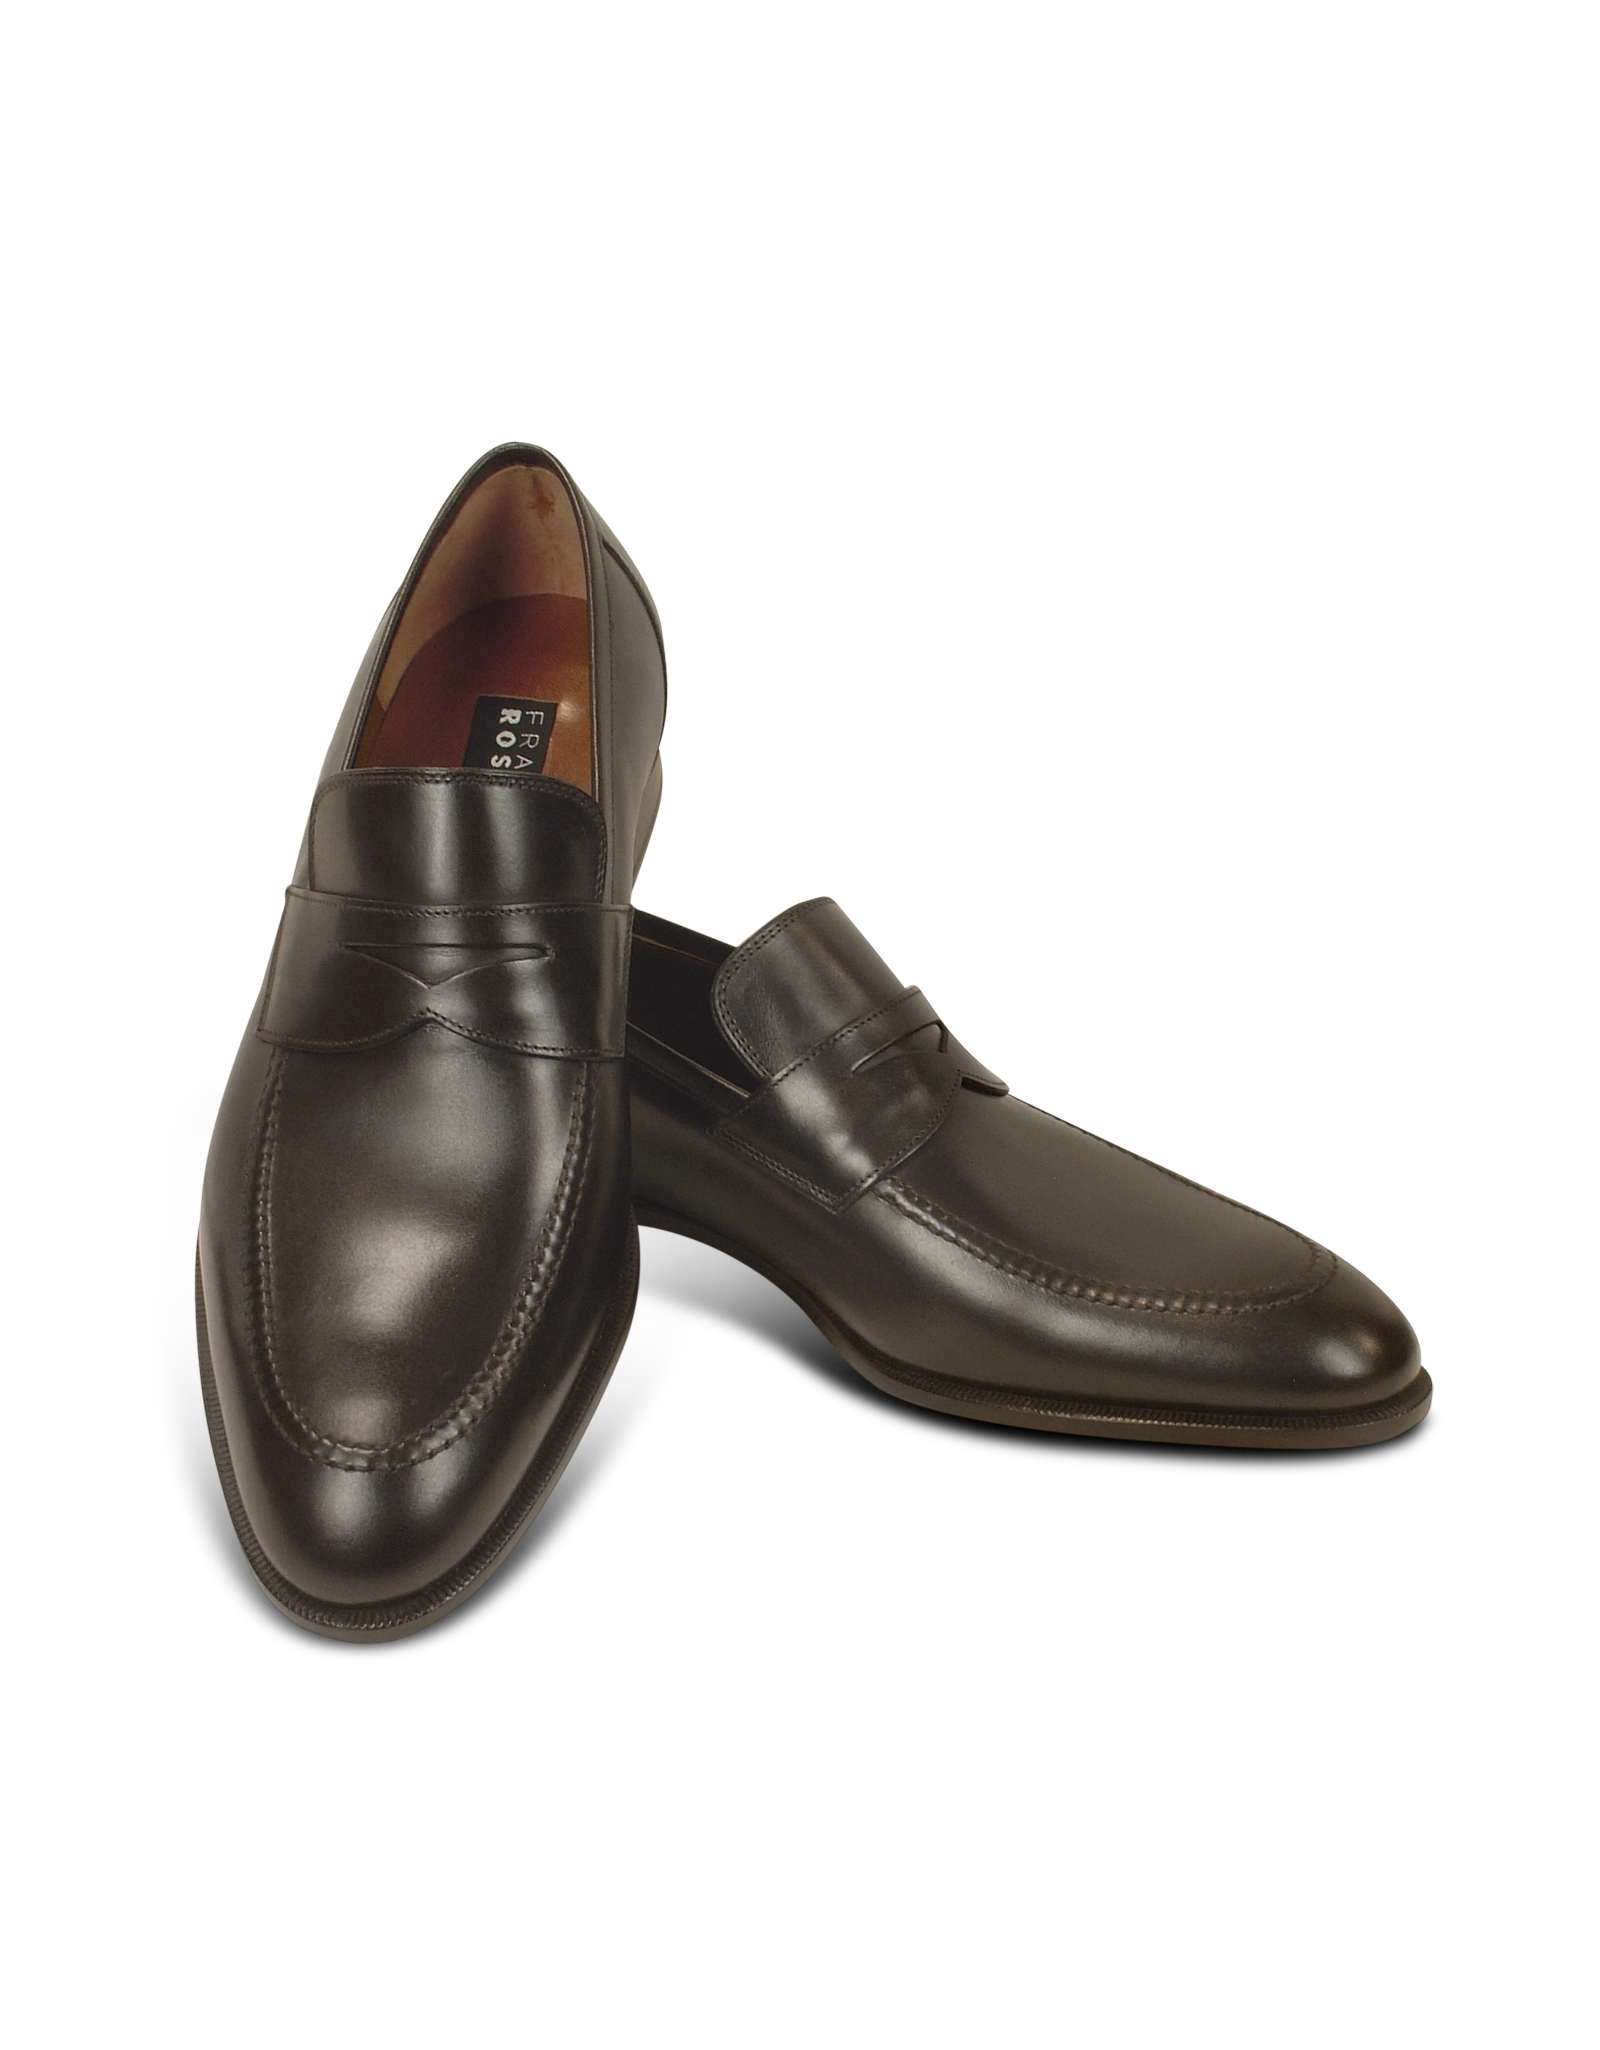 Fratelli Rossetti Shoes Uk